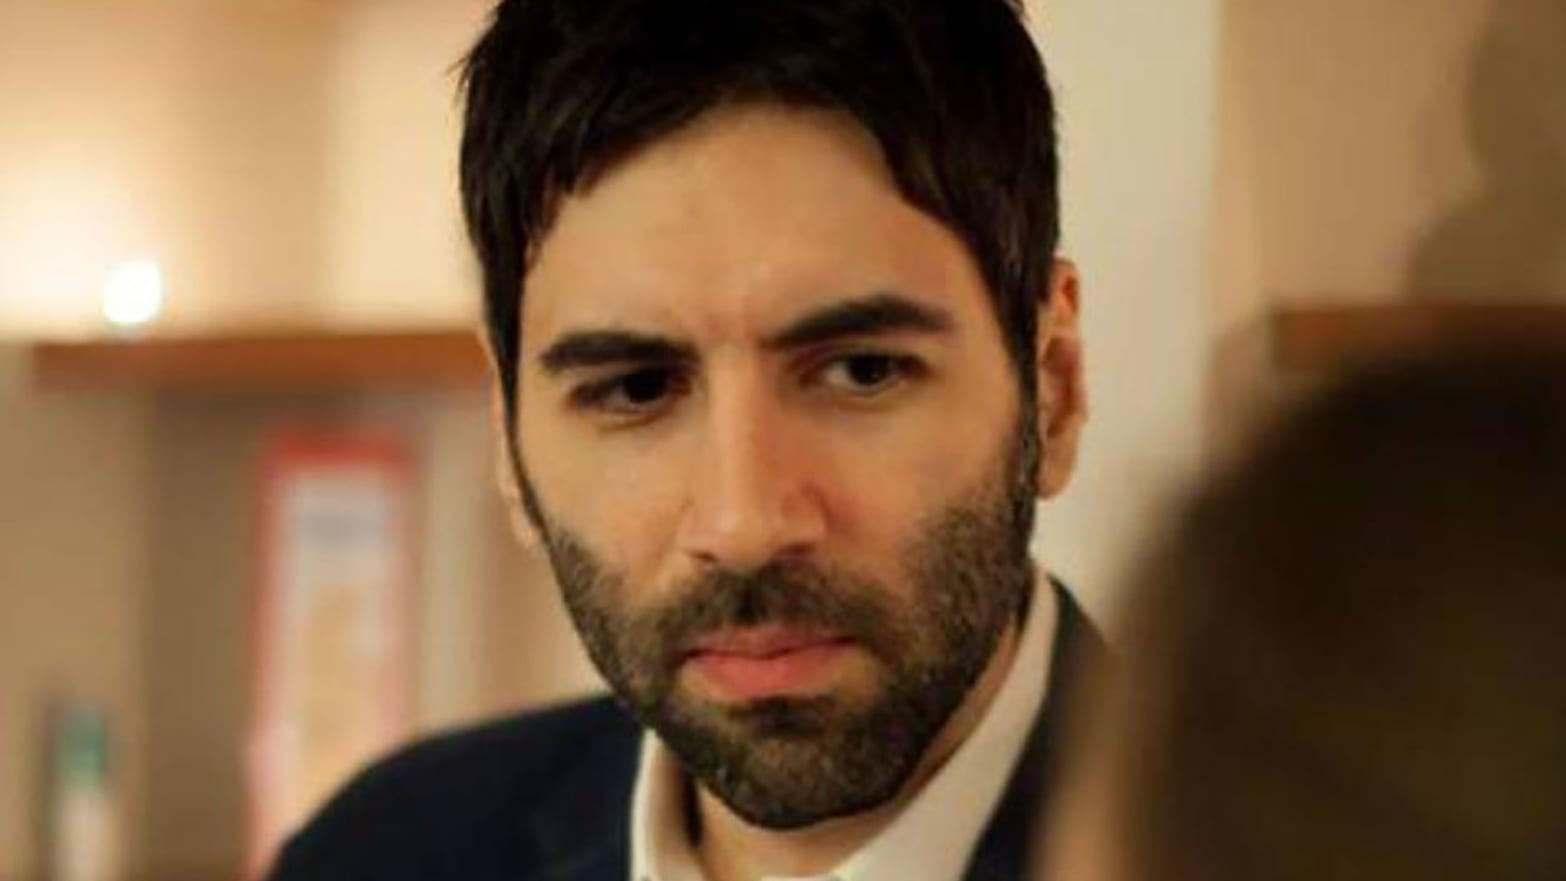 Daryush Valizadeh, the Pickup Artist Known as Roosh, Says He Has Found God